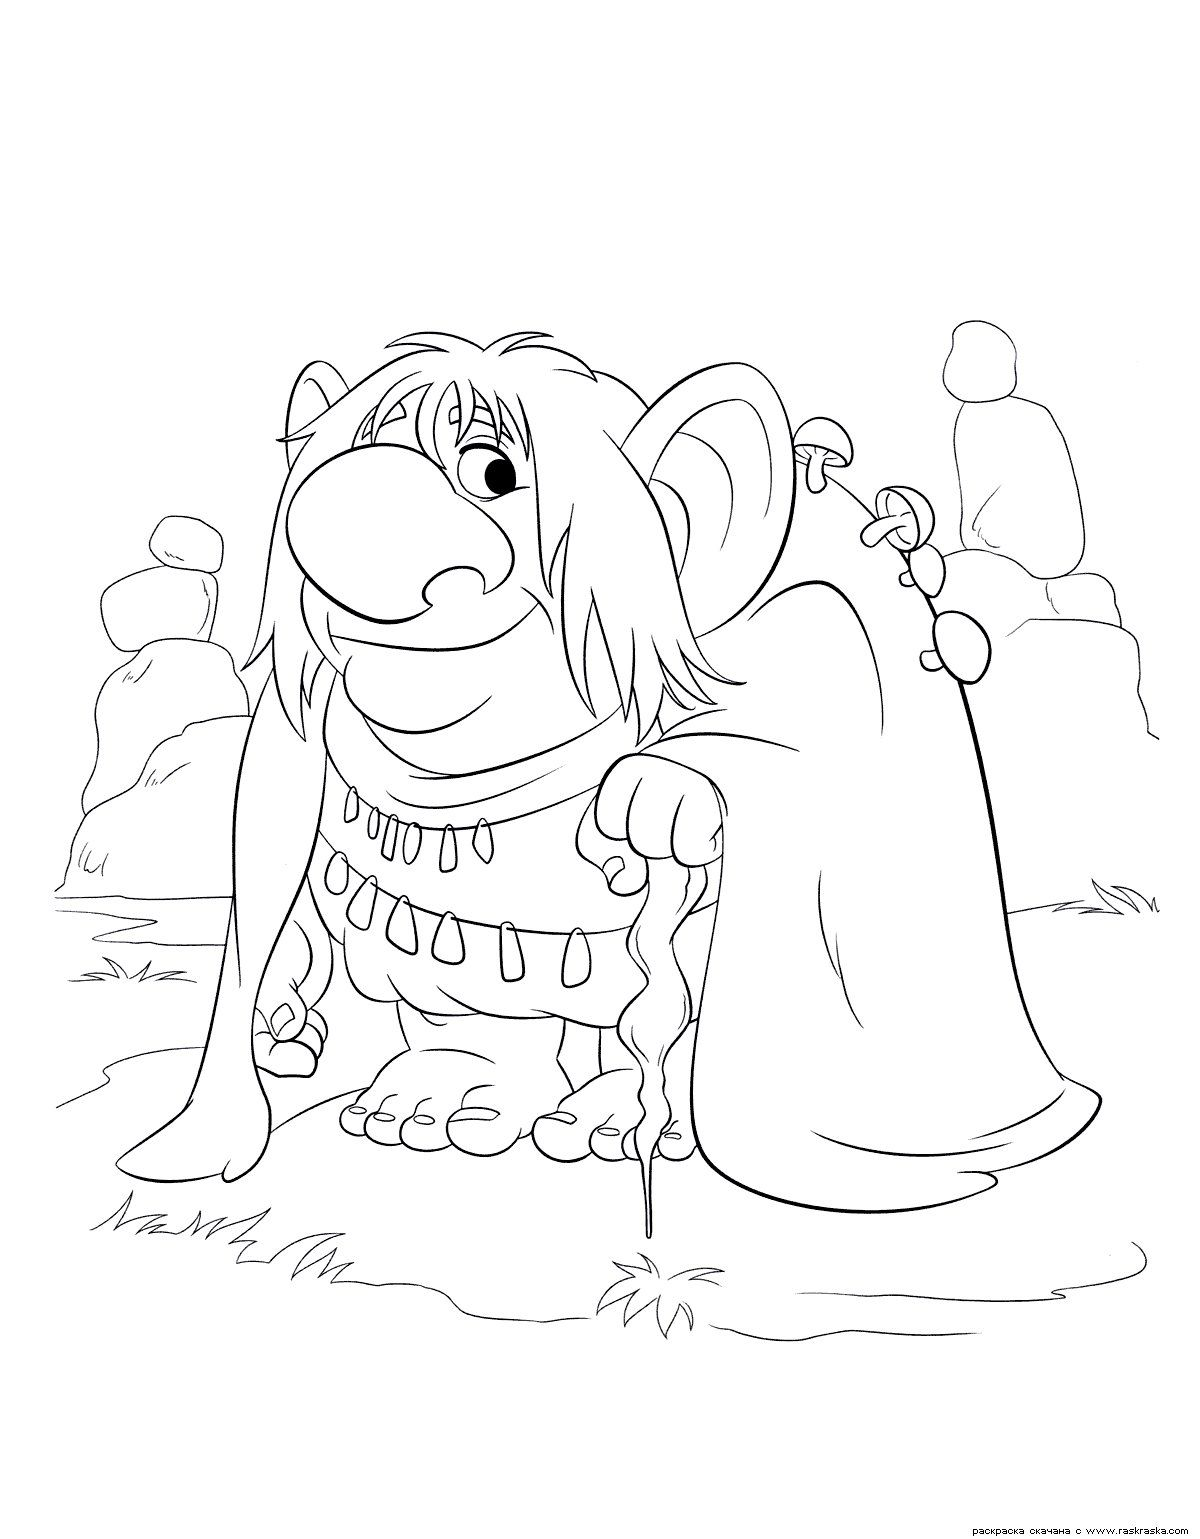 Google frozen coloring pages